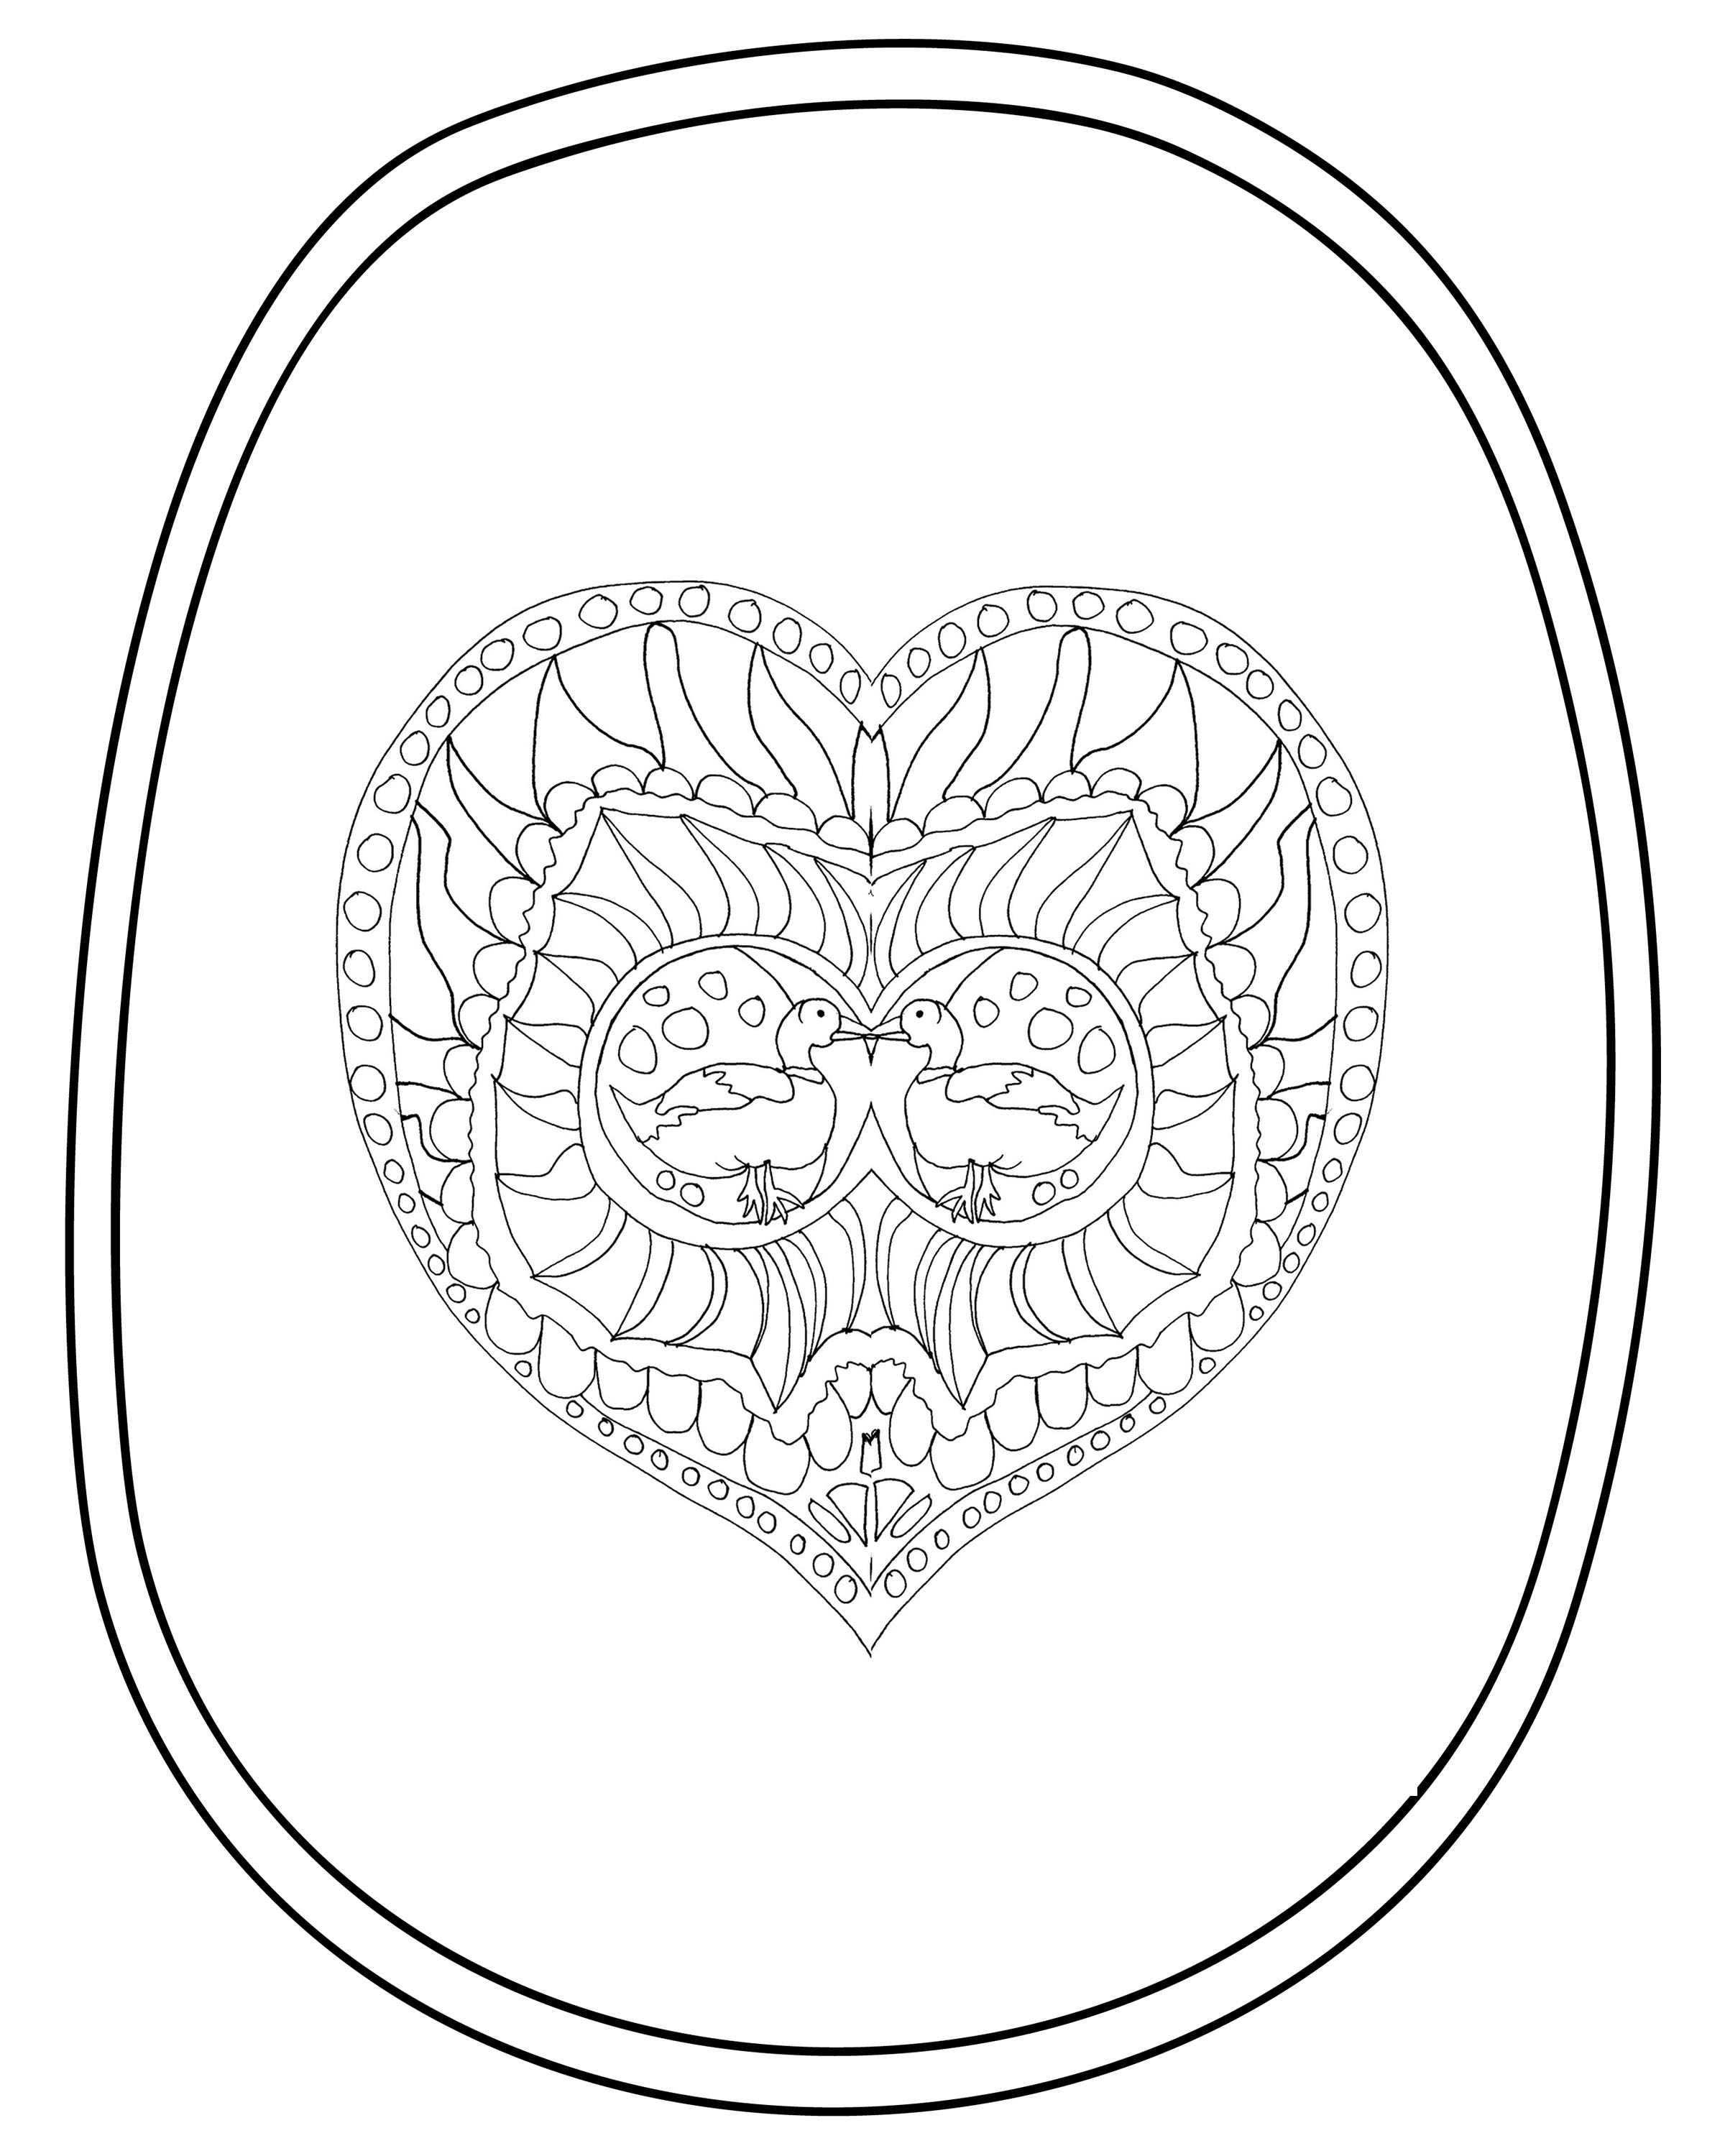 medal coloring page medal of honor coloring page at getcoloringscom free medal coloring page